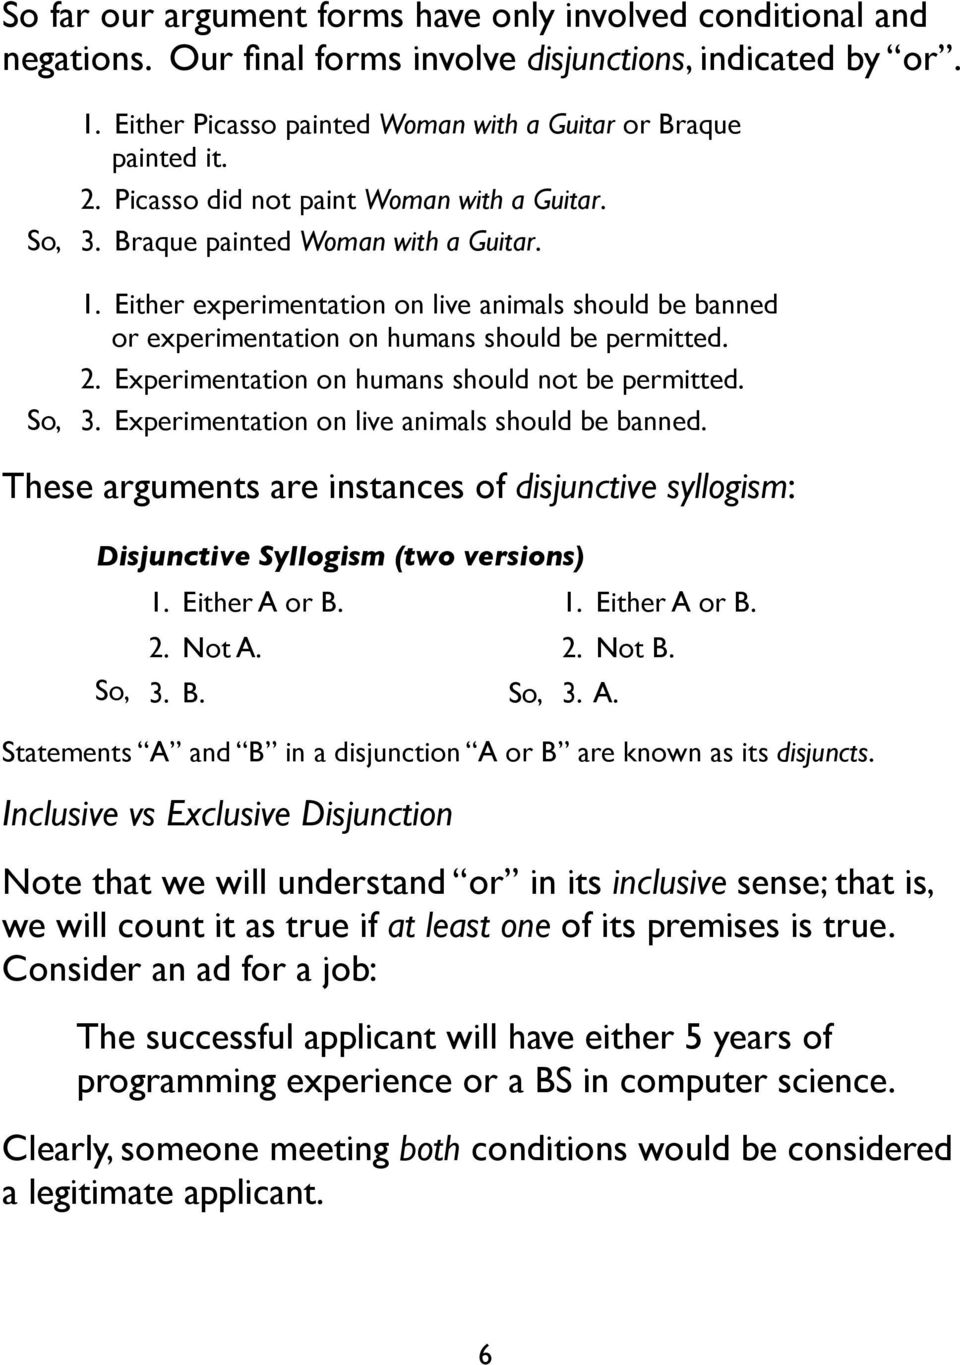 Experimentation on humans should not be permitted. 3. Experimentation on live animals should be banned. These arguments are instances of disjunctive syllogism: Disjunctive Syllogism (two versions) 1.